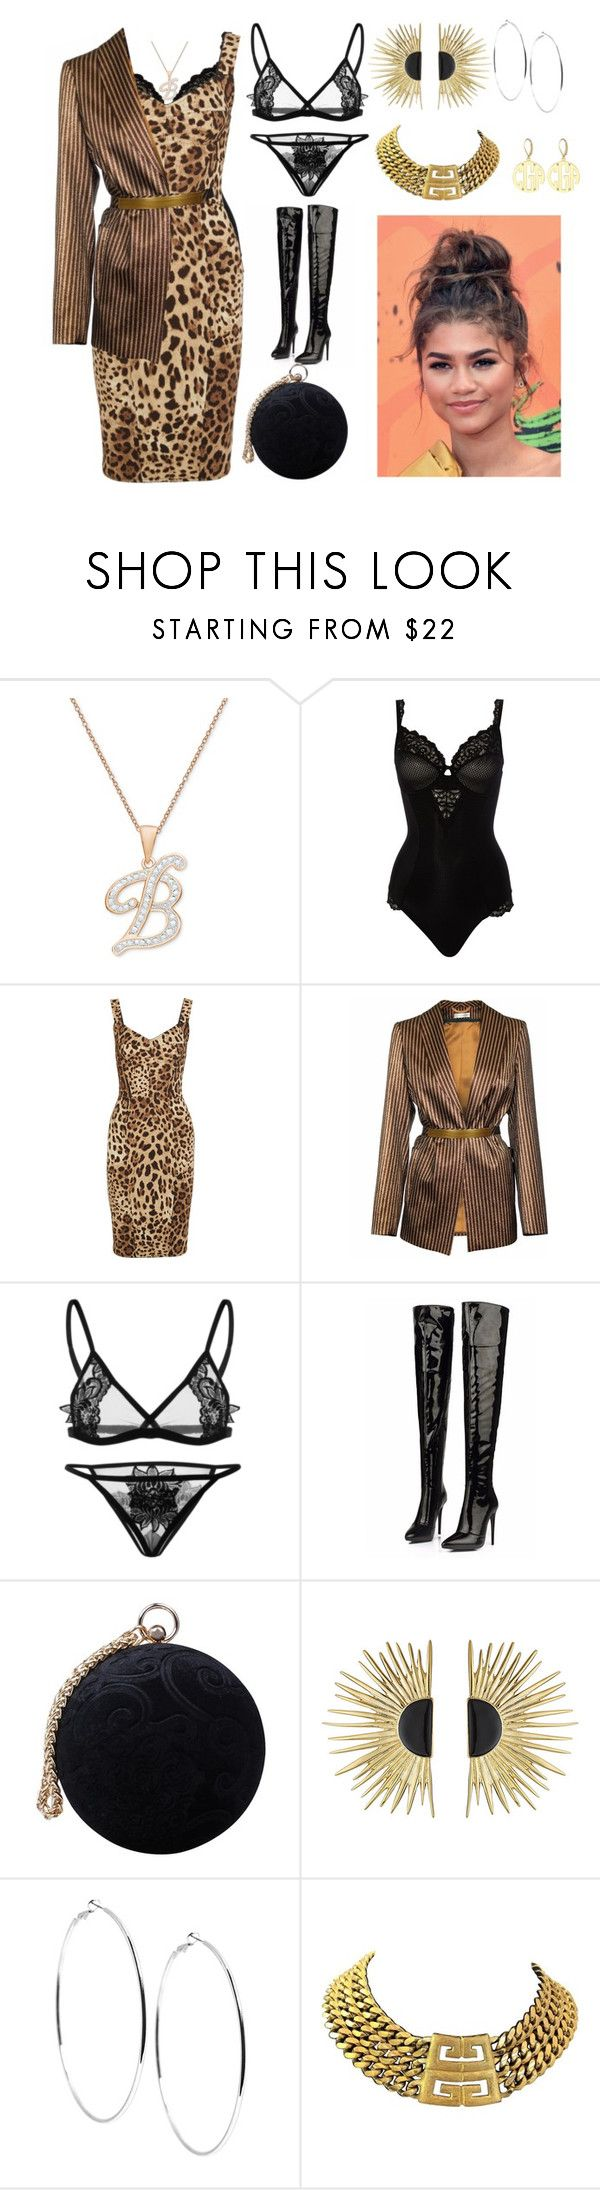 """""""To work"""" by thequeen-998 on Polyvore featuring Maison Lejaby, Dolce&Gabbana, JIRI KALFAR, Carvela, Coleman, Aurélie Bidermann, GUESS, Givenchy and Alison & Ivy"""